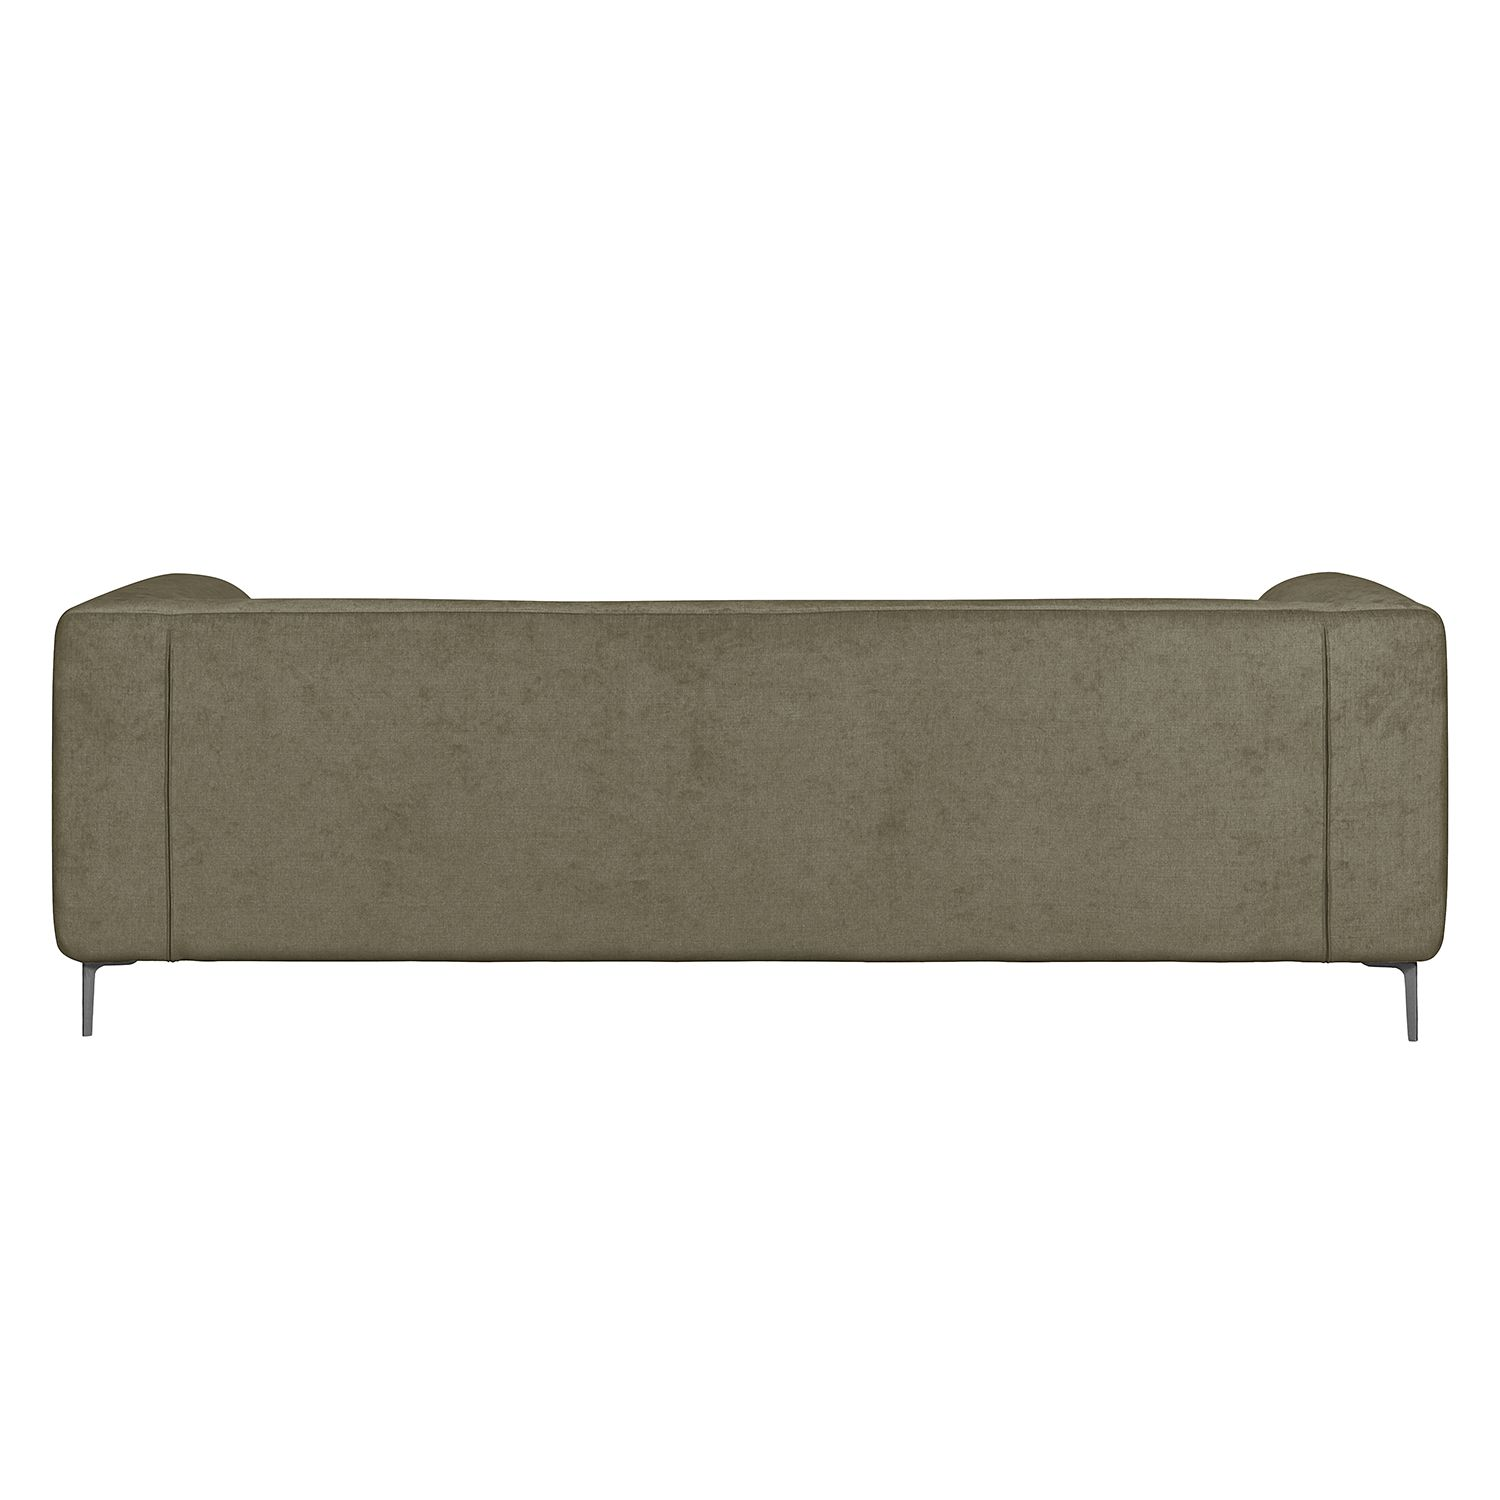 Sofa SOMBRET - Taupe